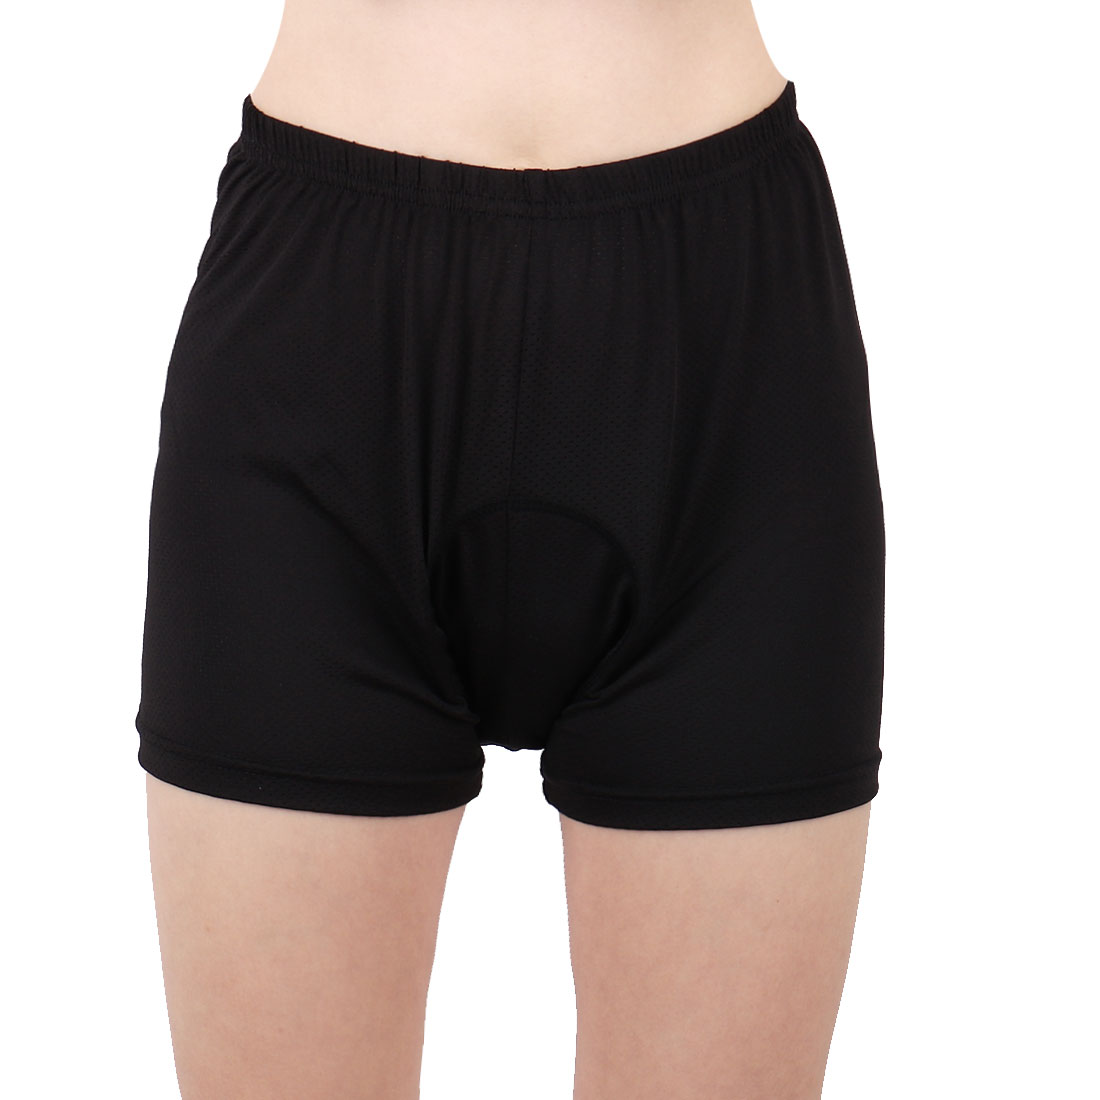 Motorcycle Bicycle Sports Underwear 3D Padded Elastic Underpants Cycling Shorts US 6